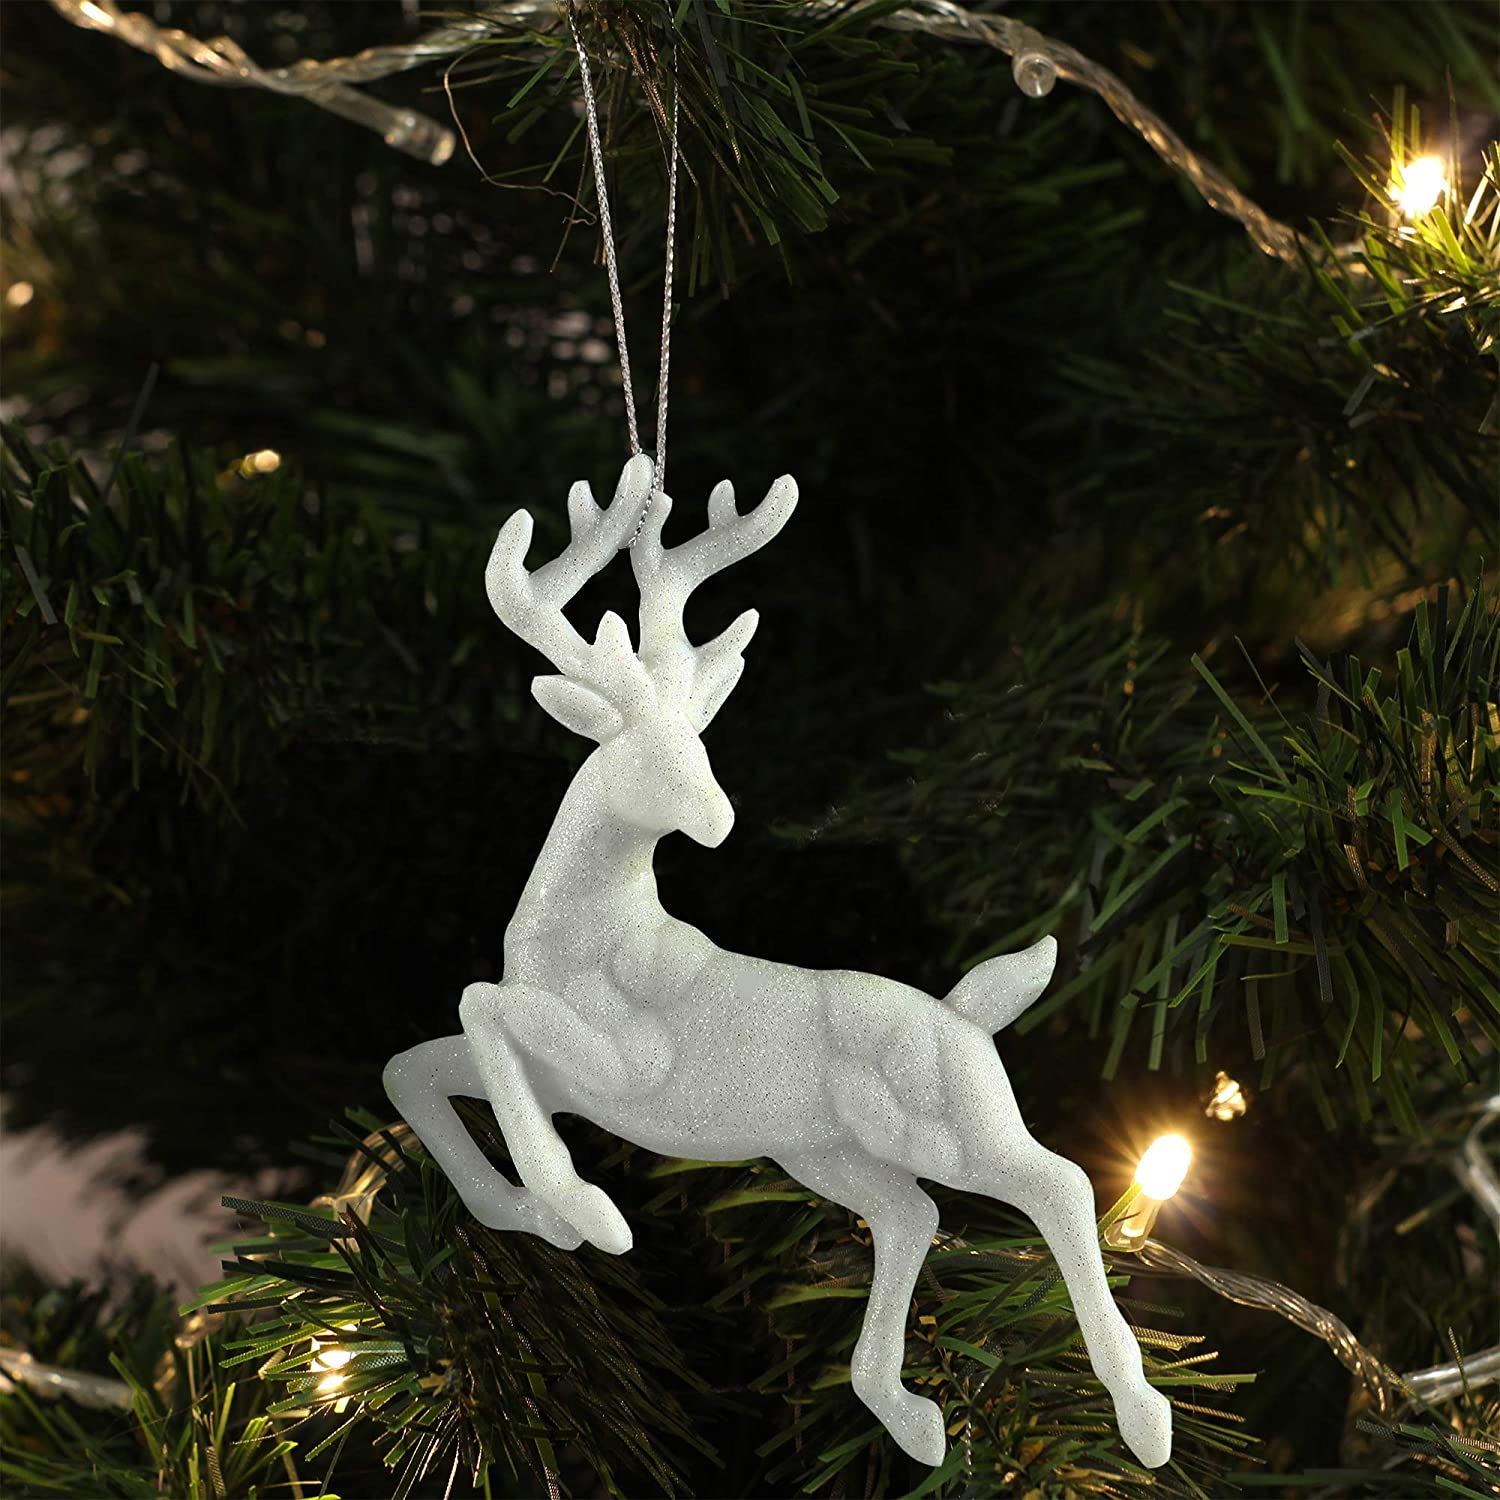 Reindeer Ornaments for Christmas Tree, Plastic Glitter Reindeer Hanging Figurine Ornament Set of 2 Packs for Christmas Decoration, 5.5 Inches Height (2)